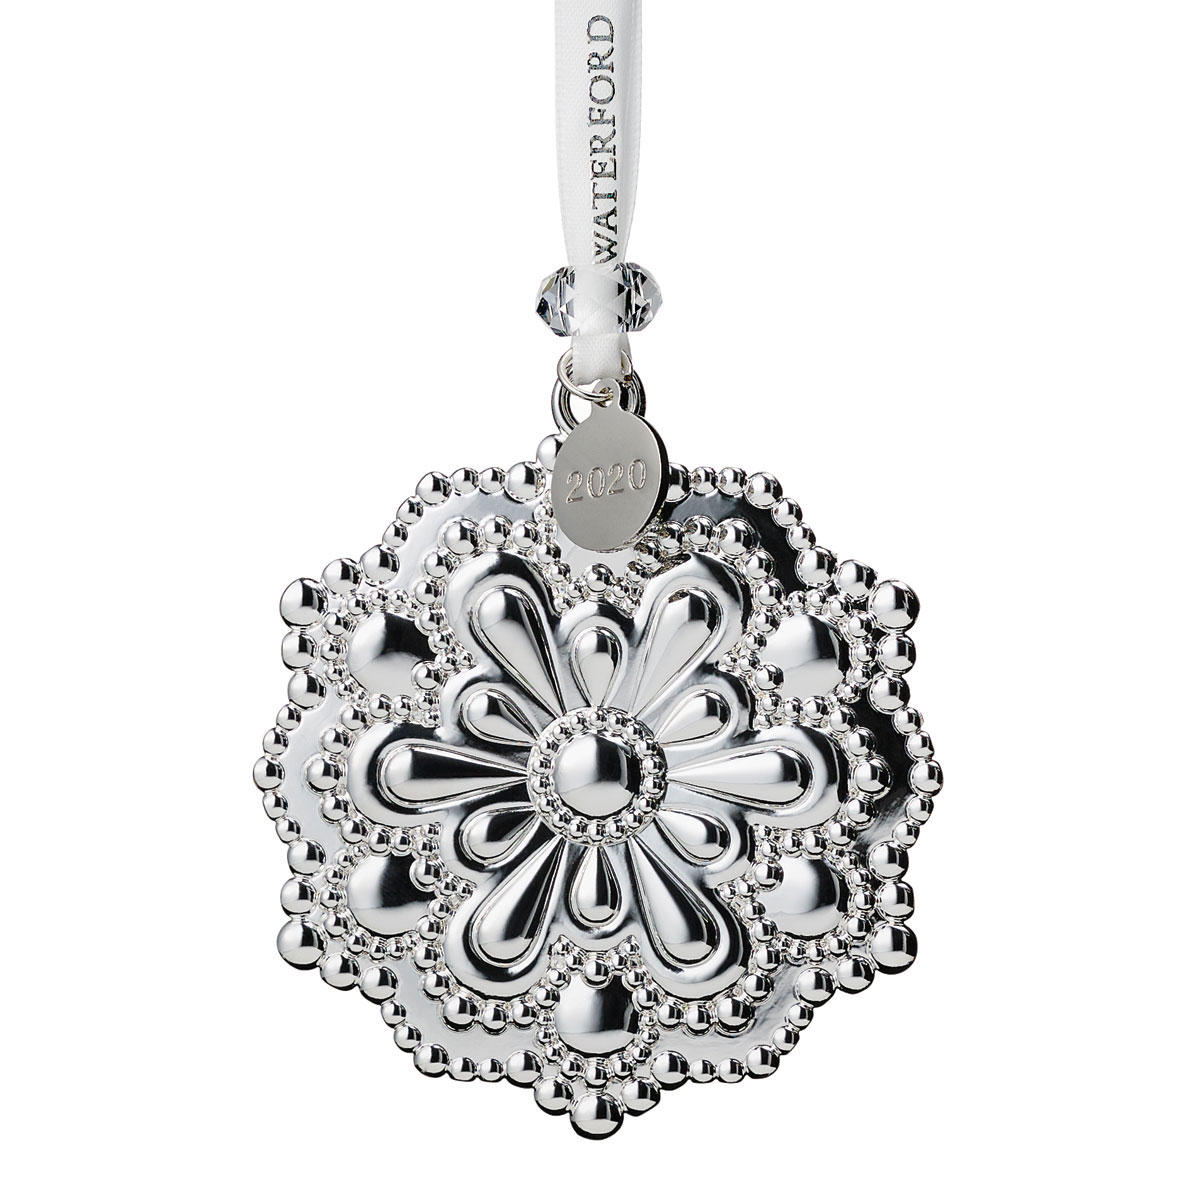 Waterford 2020 Silver Heritage Snowflake Ornament